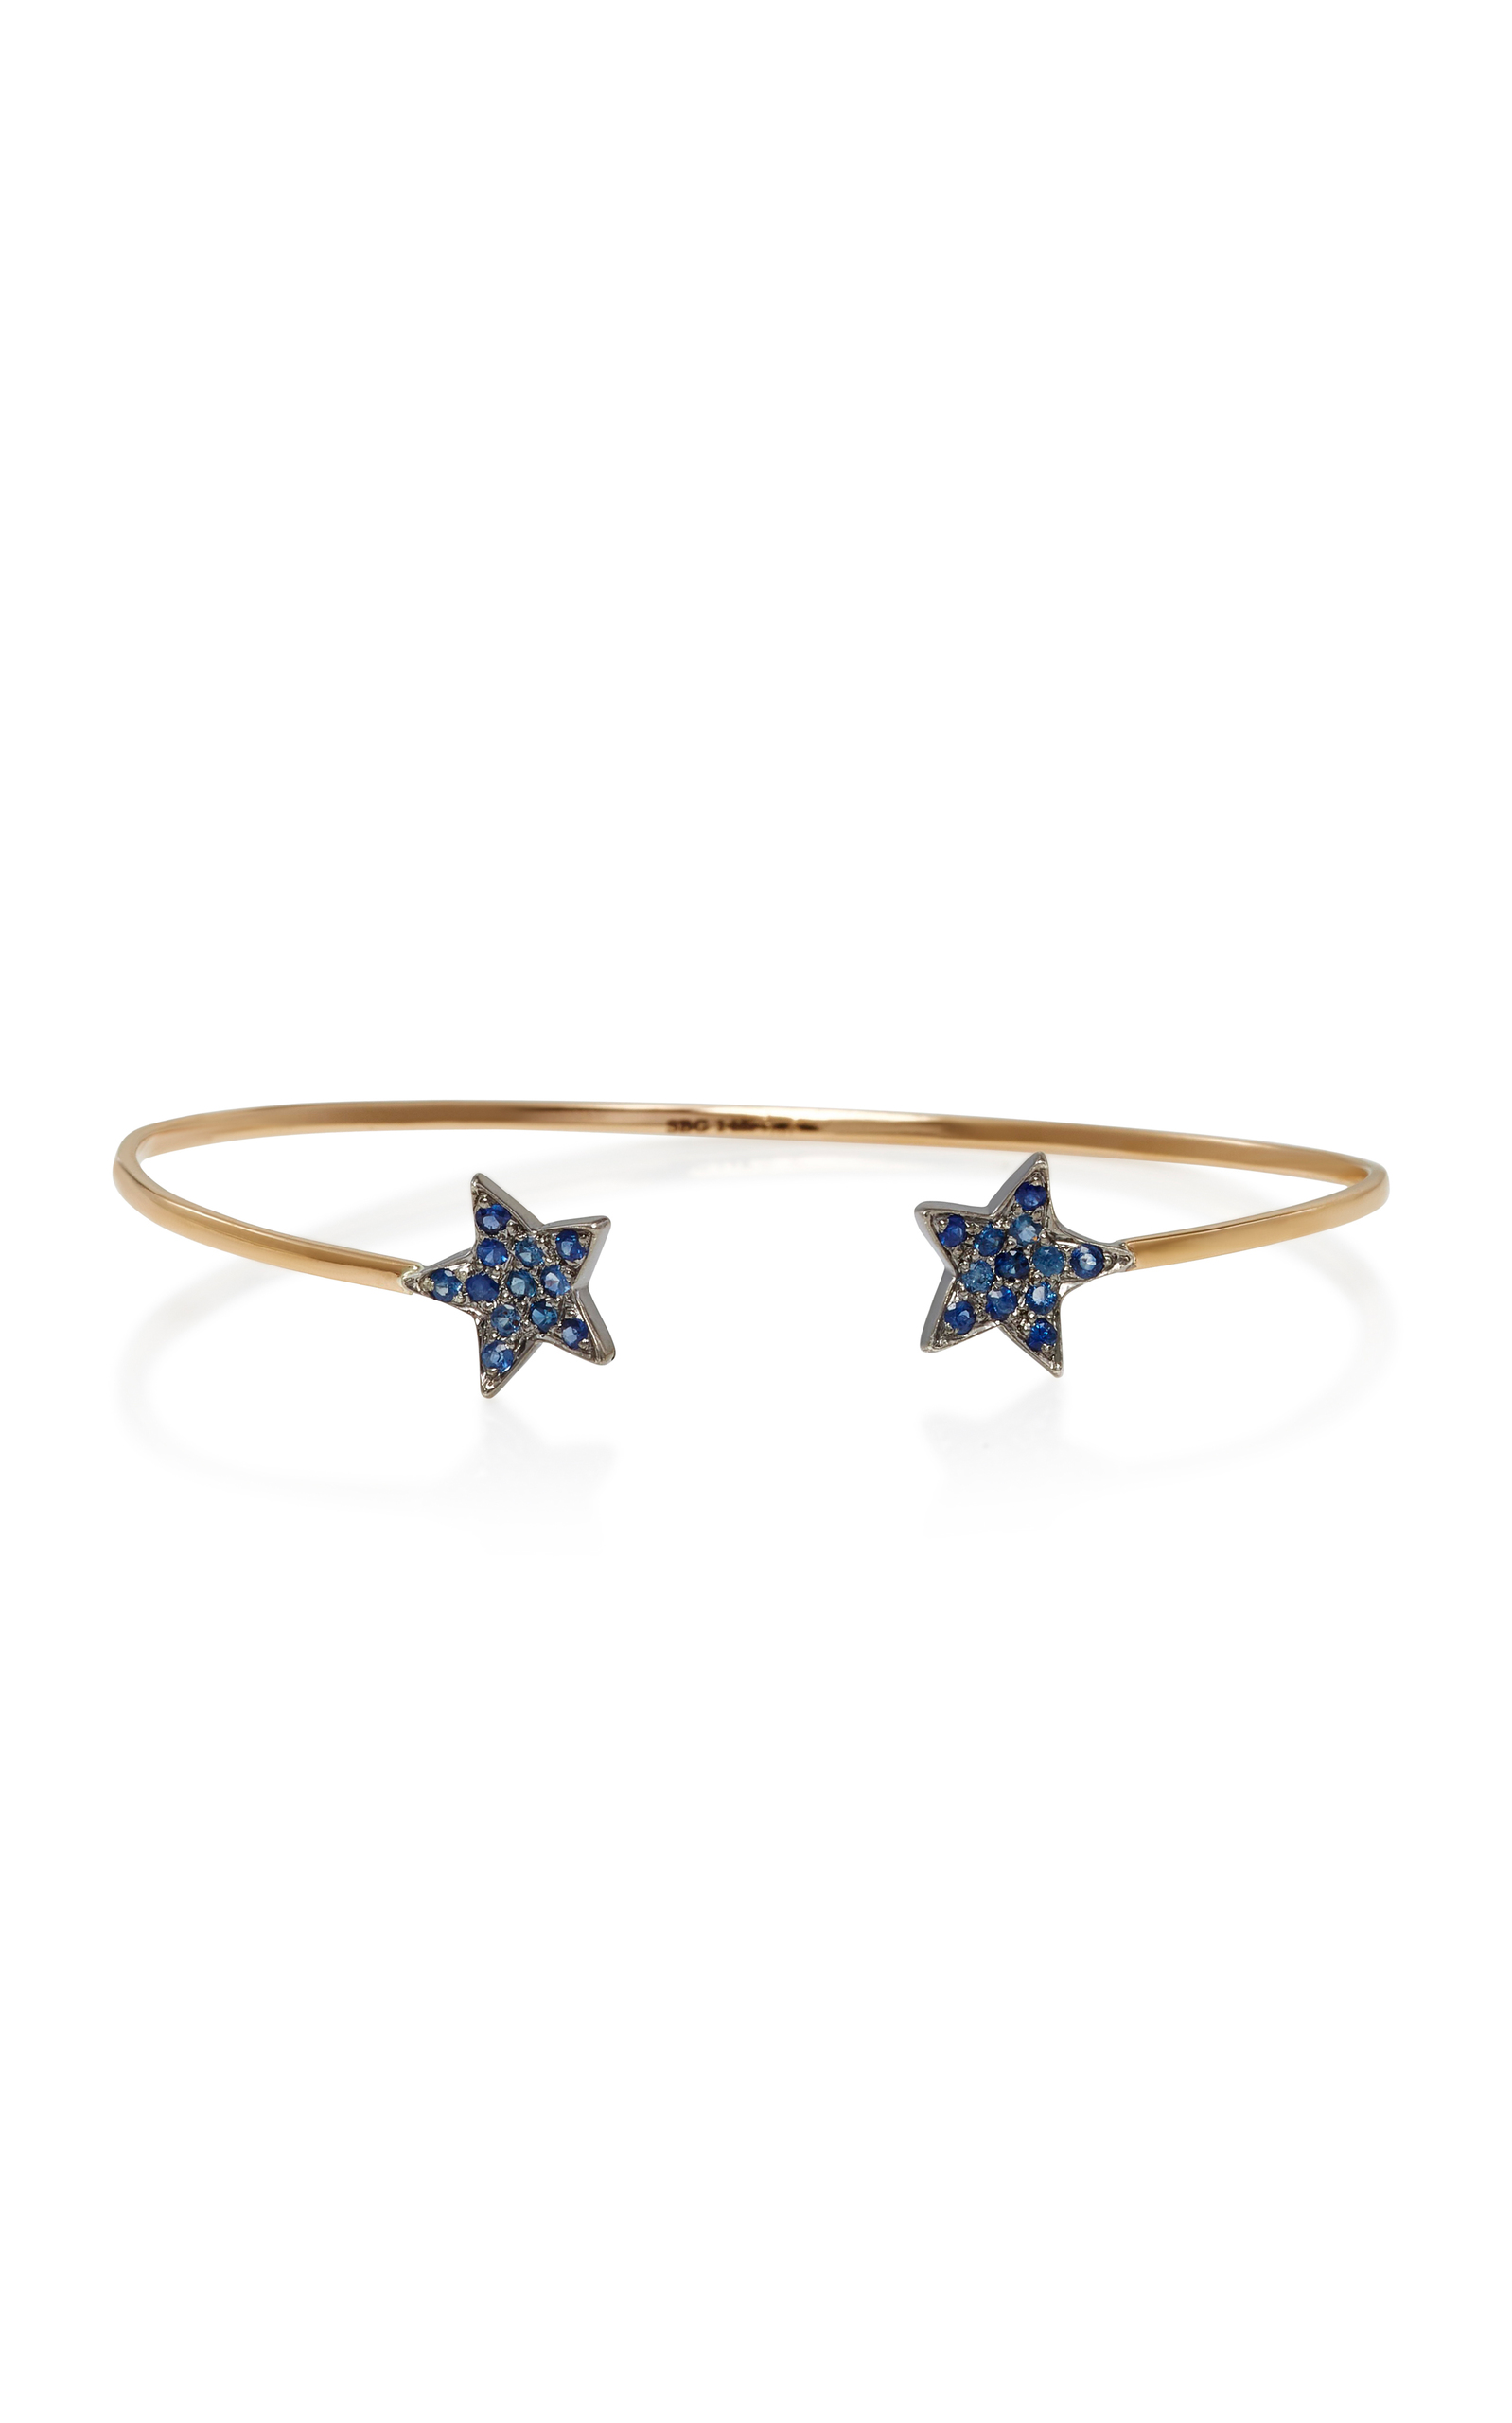 SHE BEE 14K GOLD AND SAPPHIRE STAR CUFF